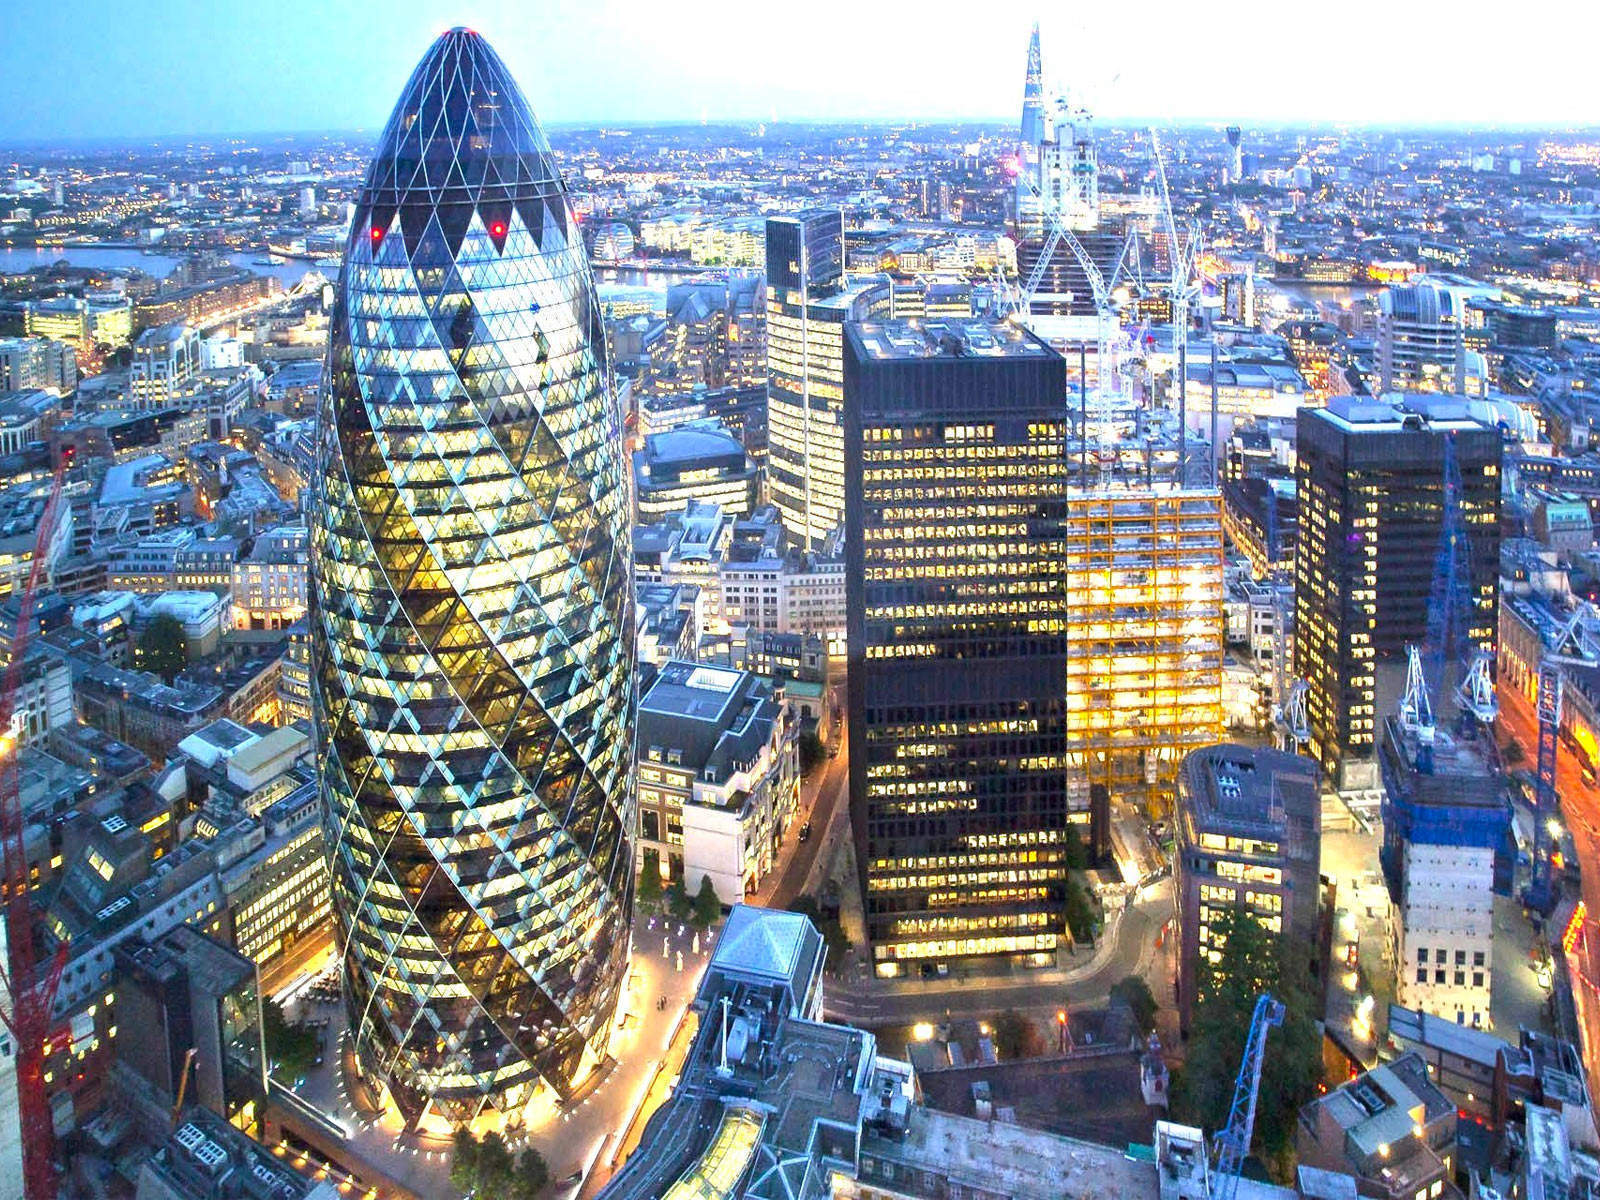 Will London remain the financial capital in post-Brexit Europe?